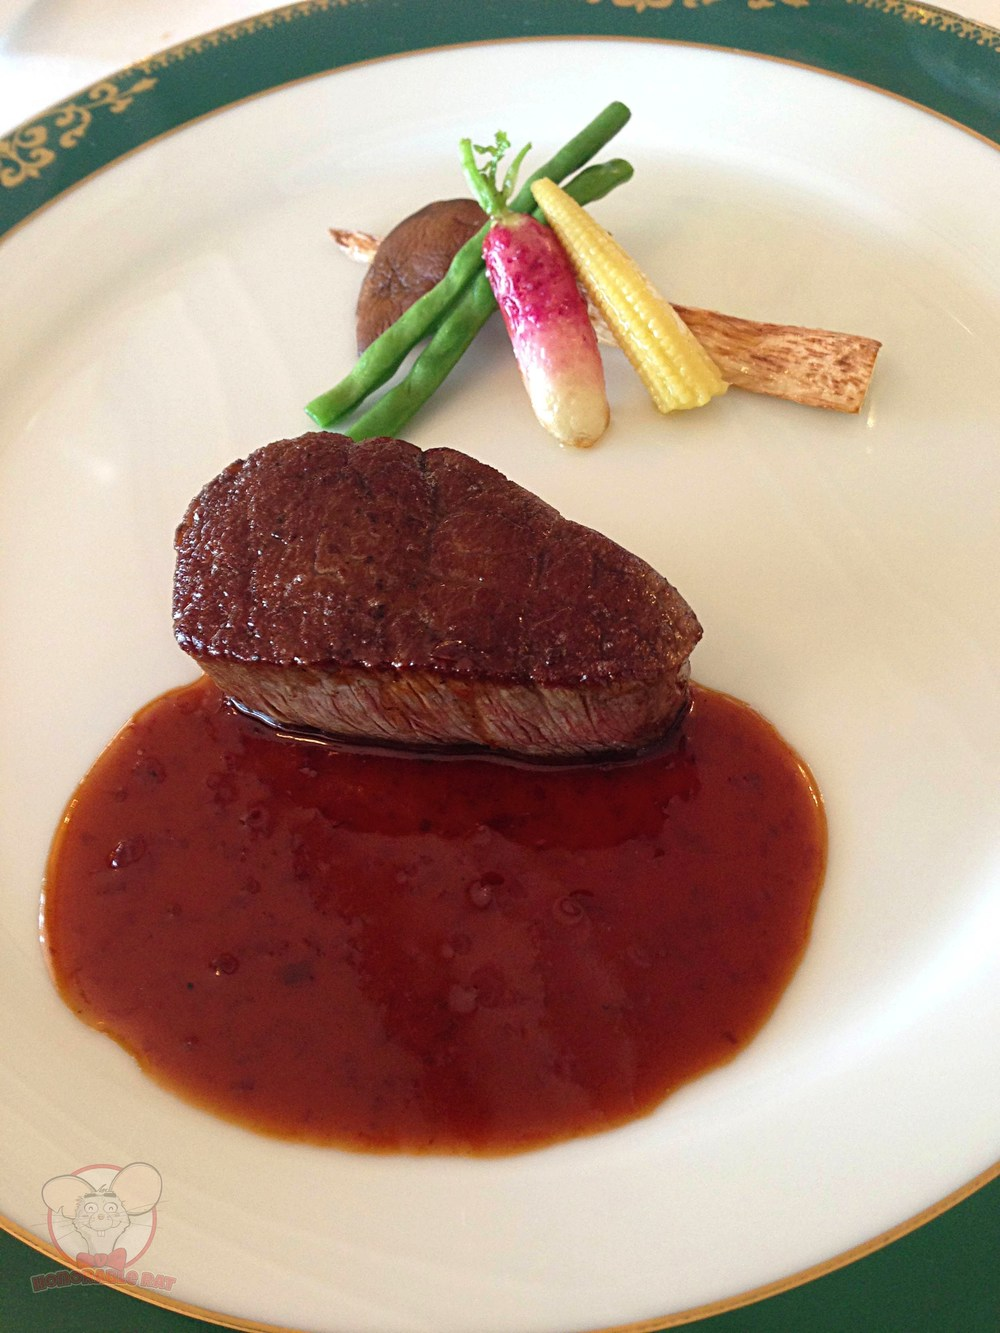 Main dish 2: Tenderloin steak